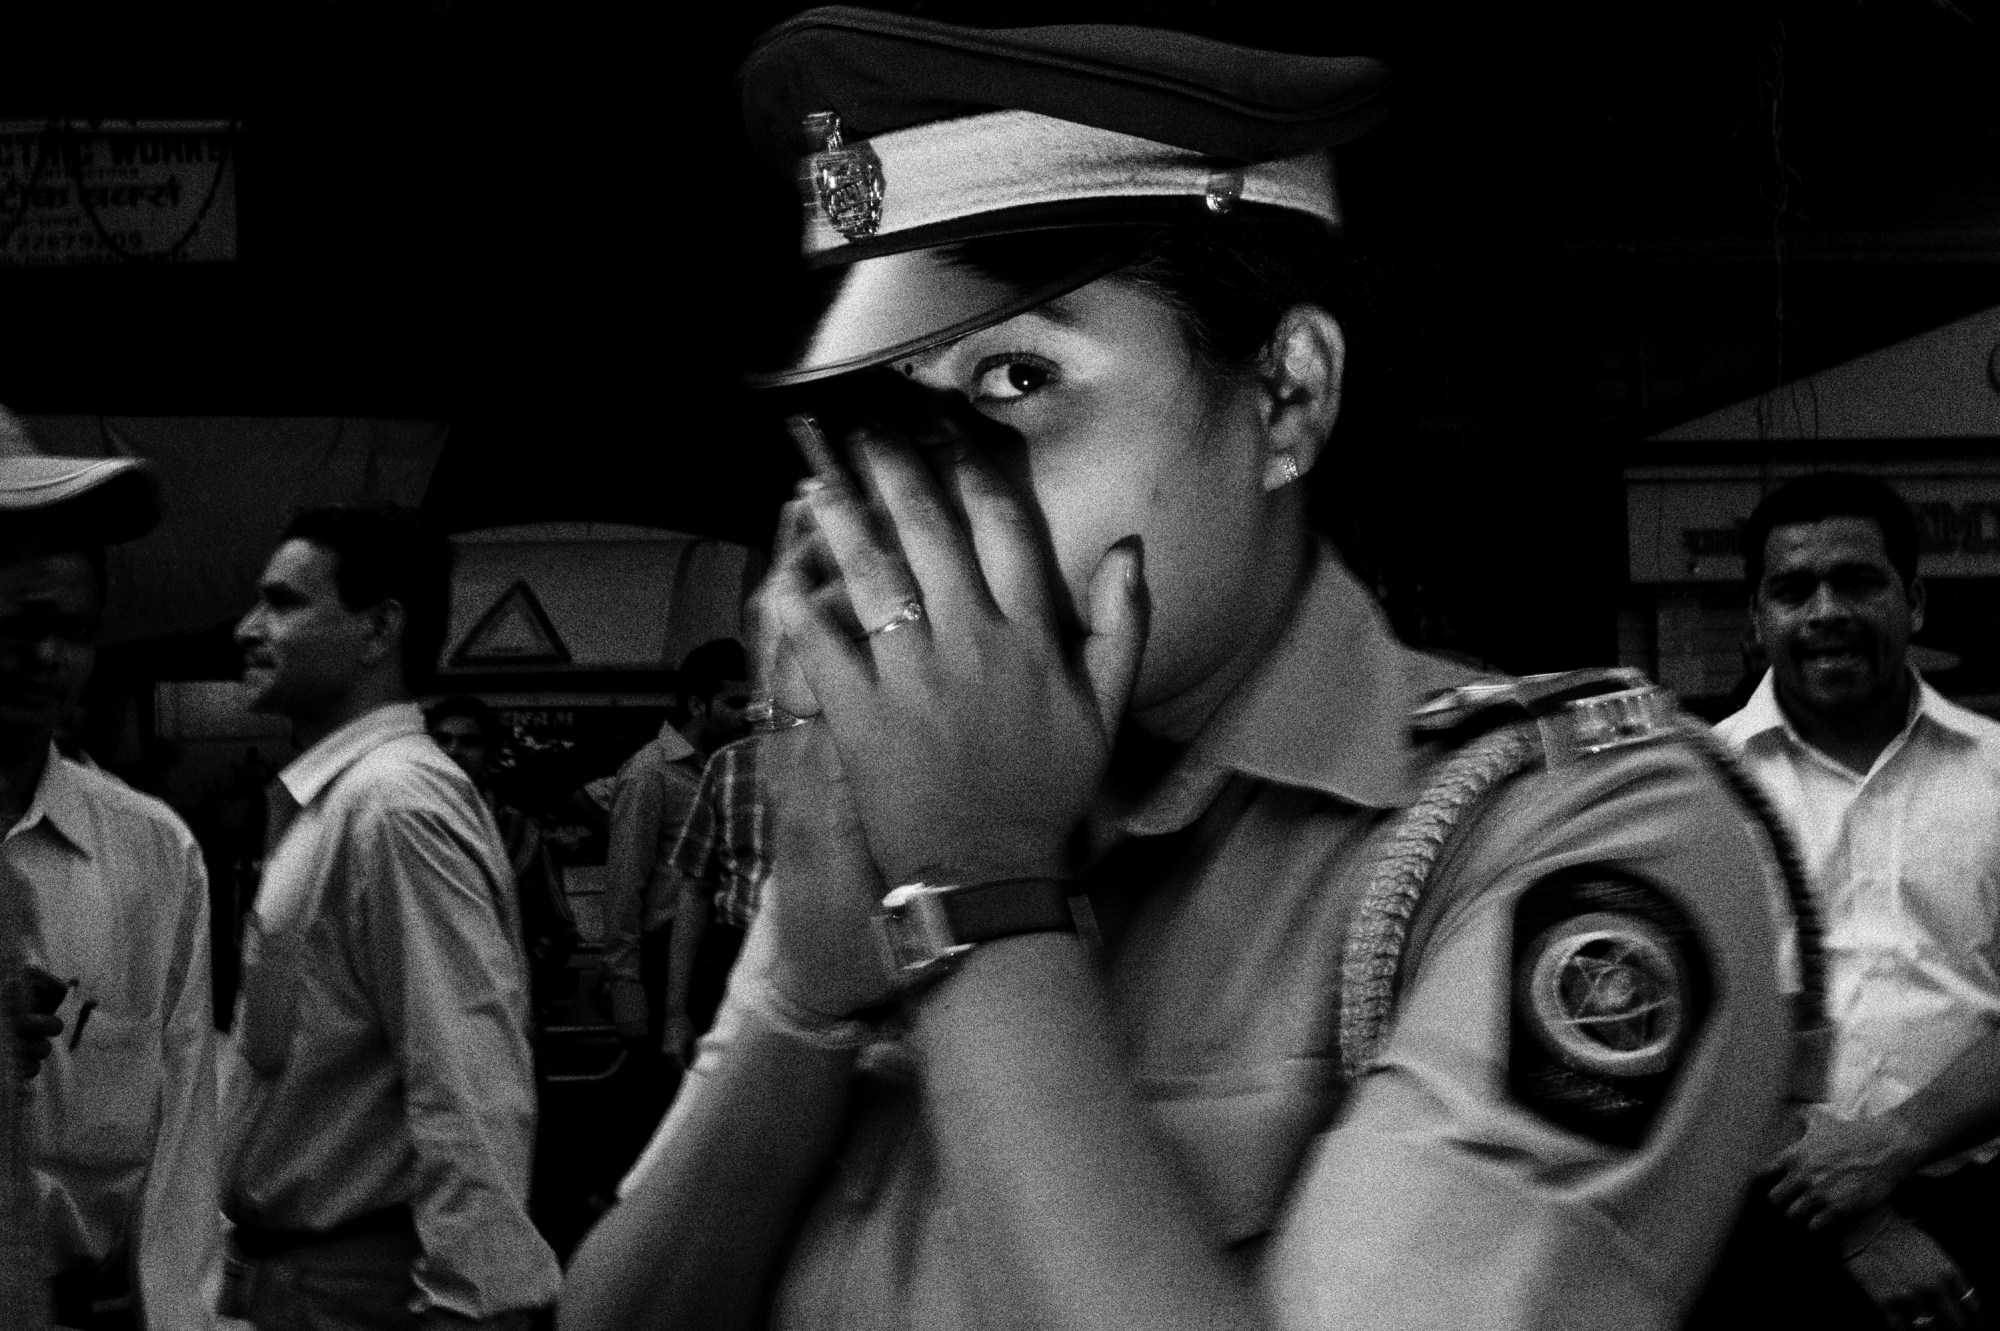 Mumbai woman cop, whisper. Leica M9, flash, 35mm, 1.2 meters.